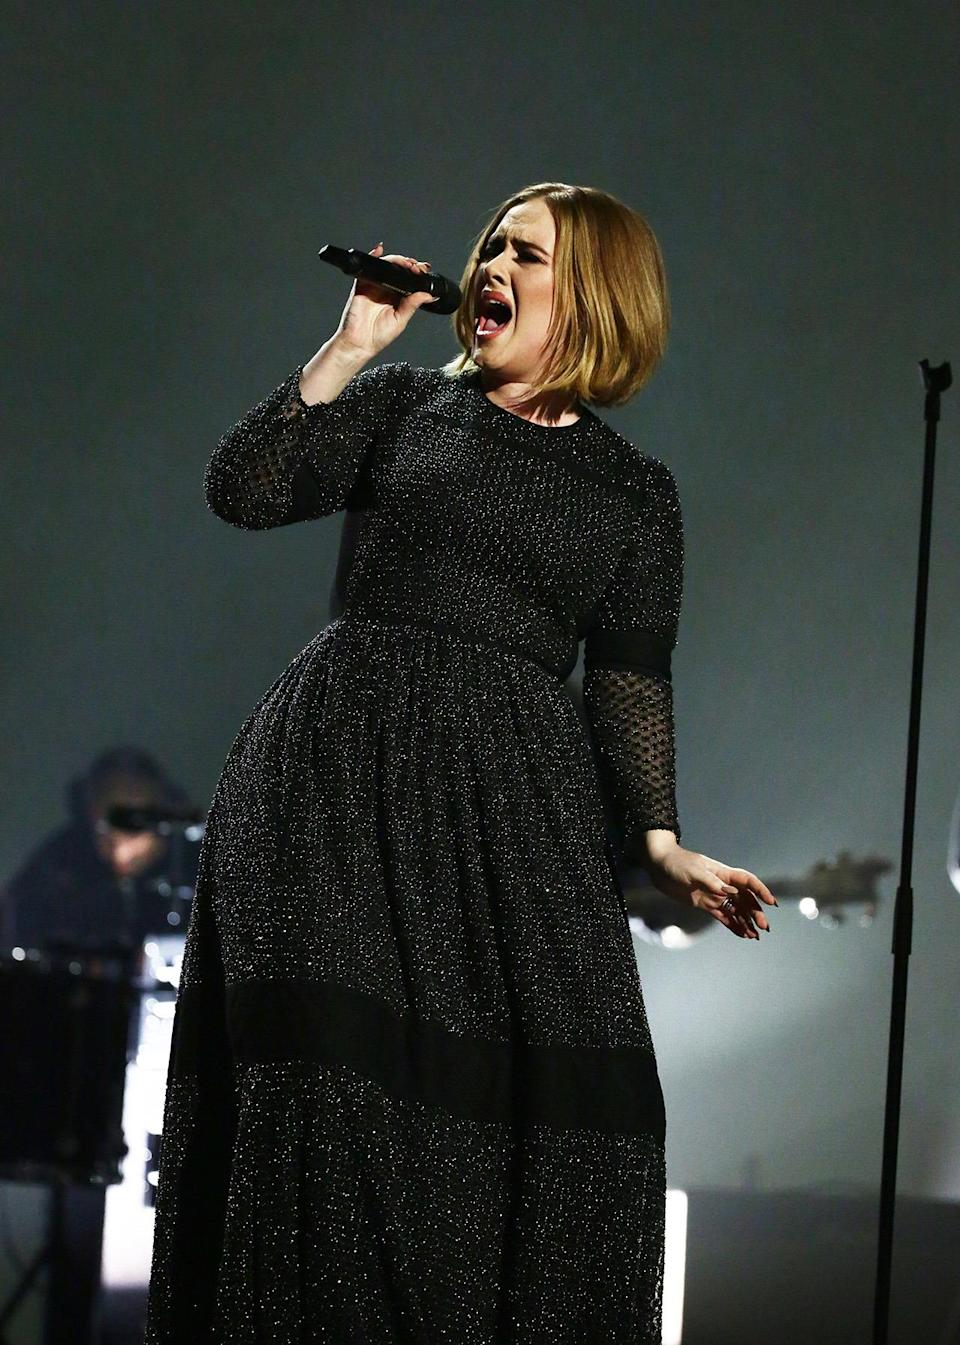 <p>Adele might be catching flack for her pre-recorded performance on the <i>X-Factor</i> finale, but there hasn't been any backlash in response to her beautiful look. Not only did she look stunning in a custom black Burberry gown covered in shimmery embellishments, but she also debuted a major new haircut. <i>Photo: Corbis</i></p>